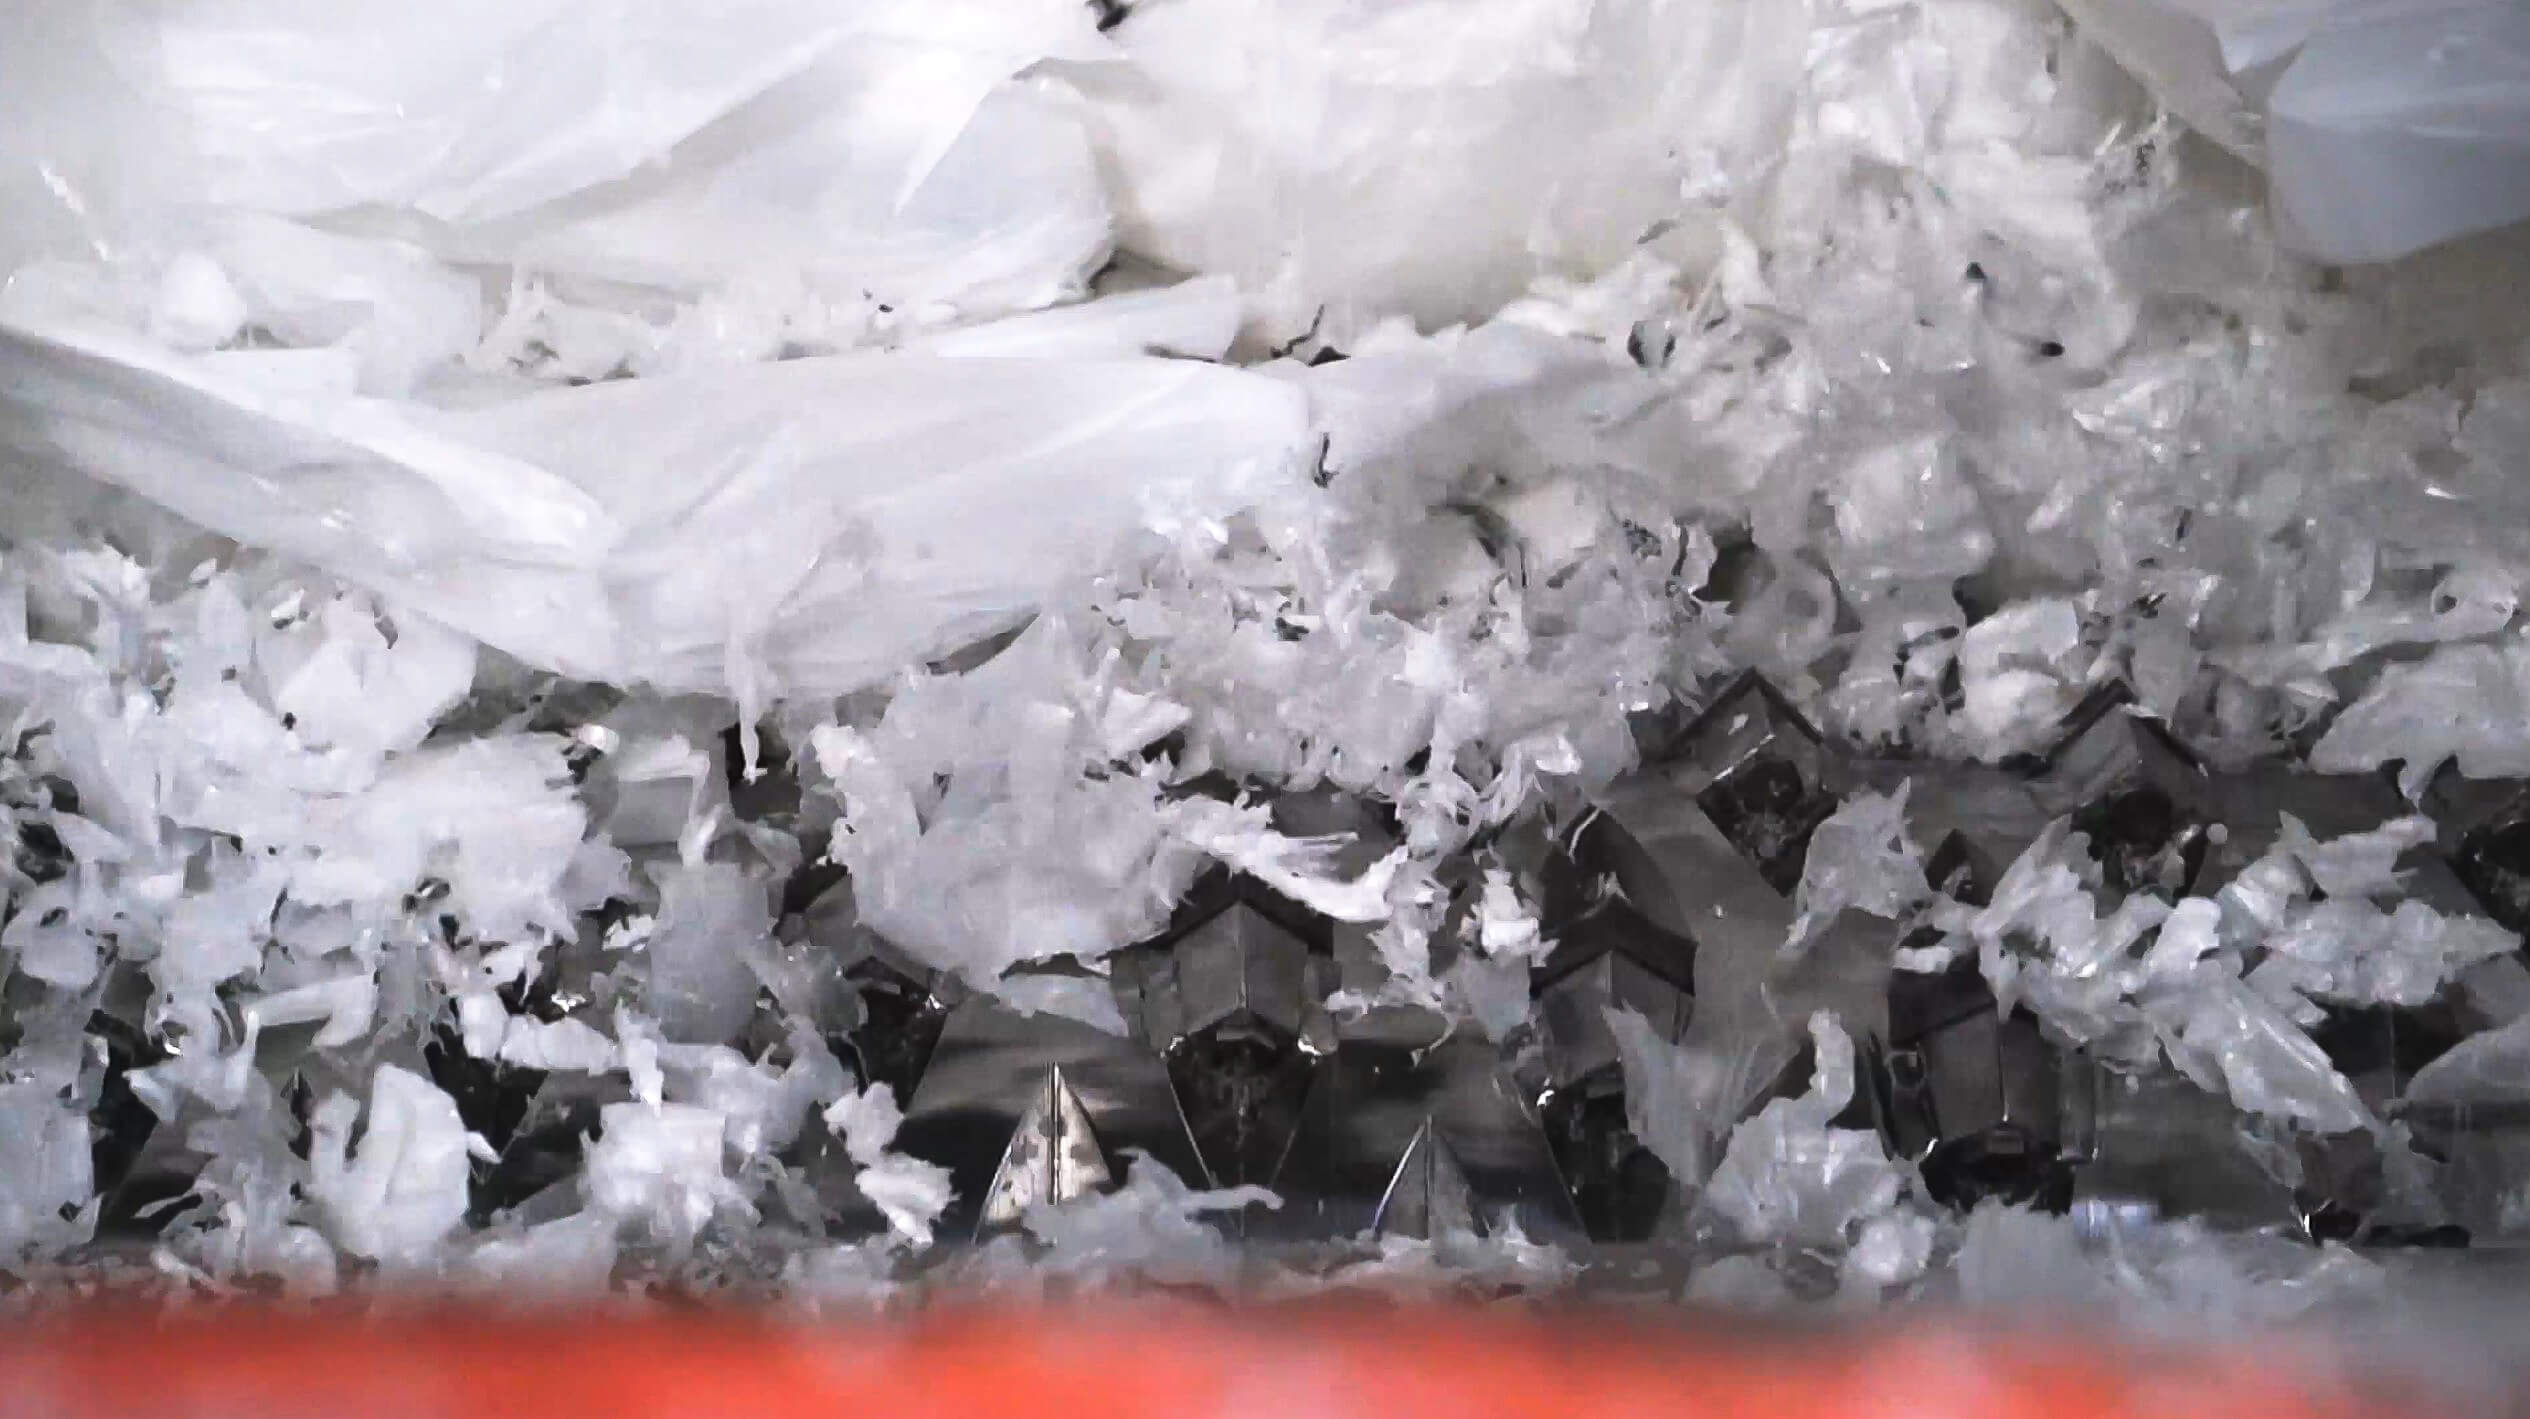 shredding of plastic